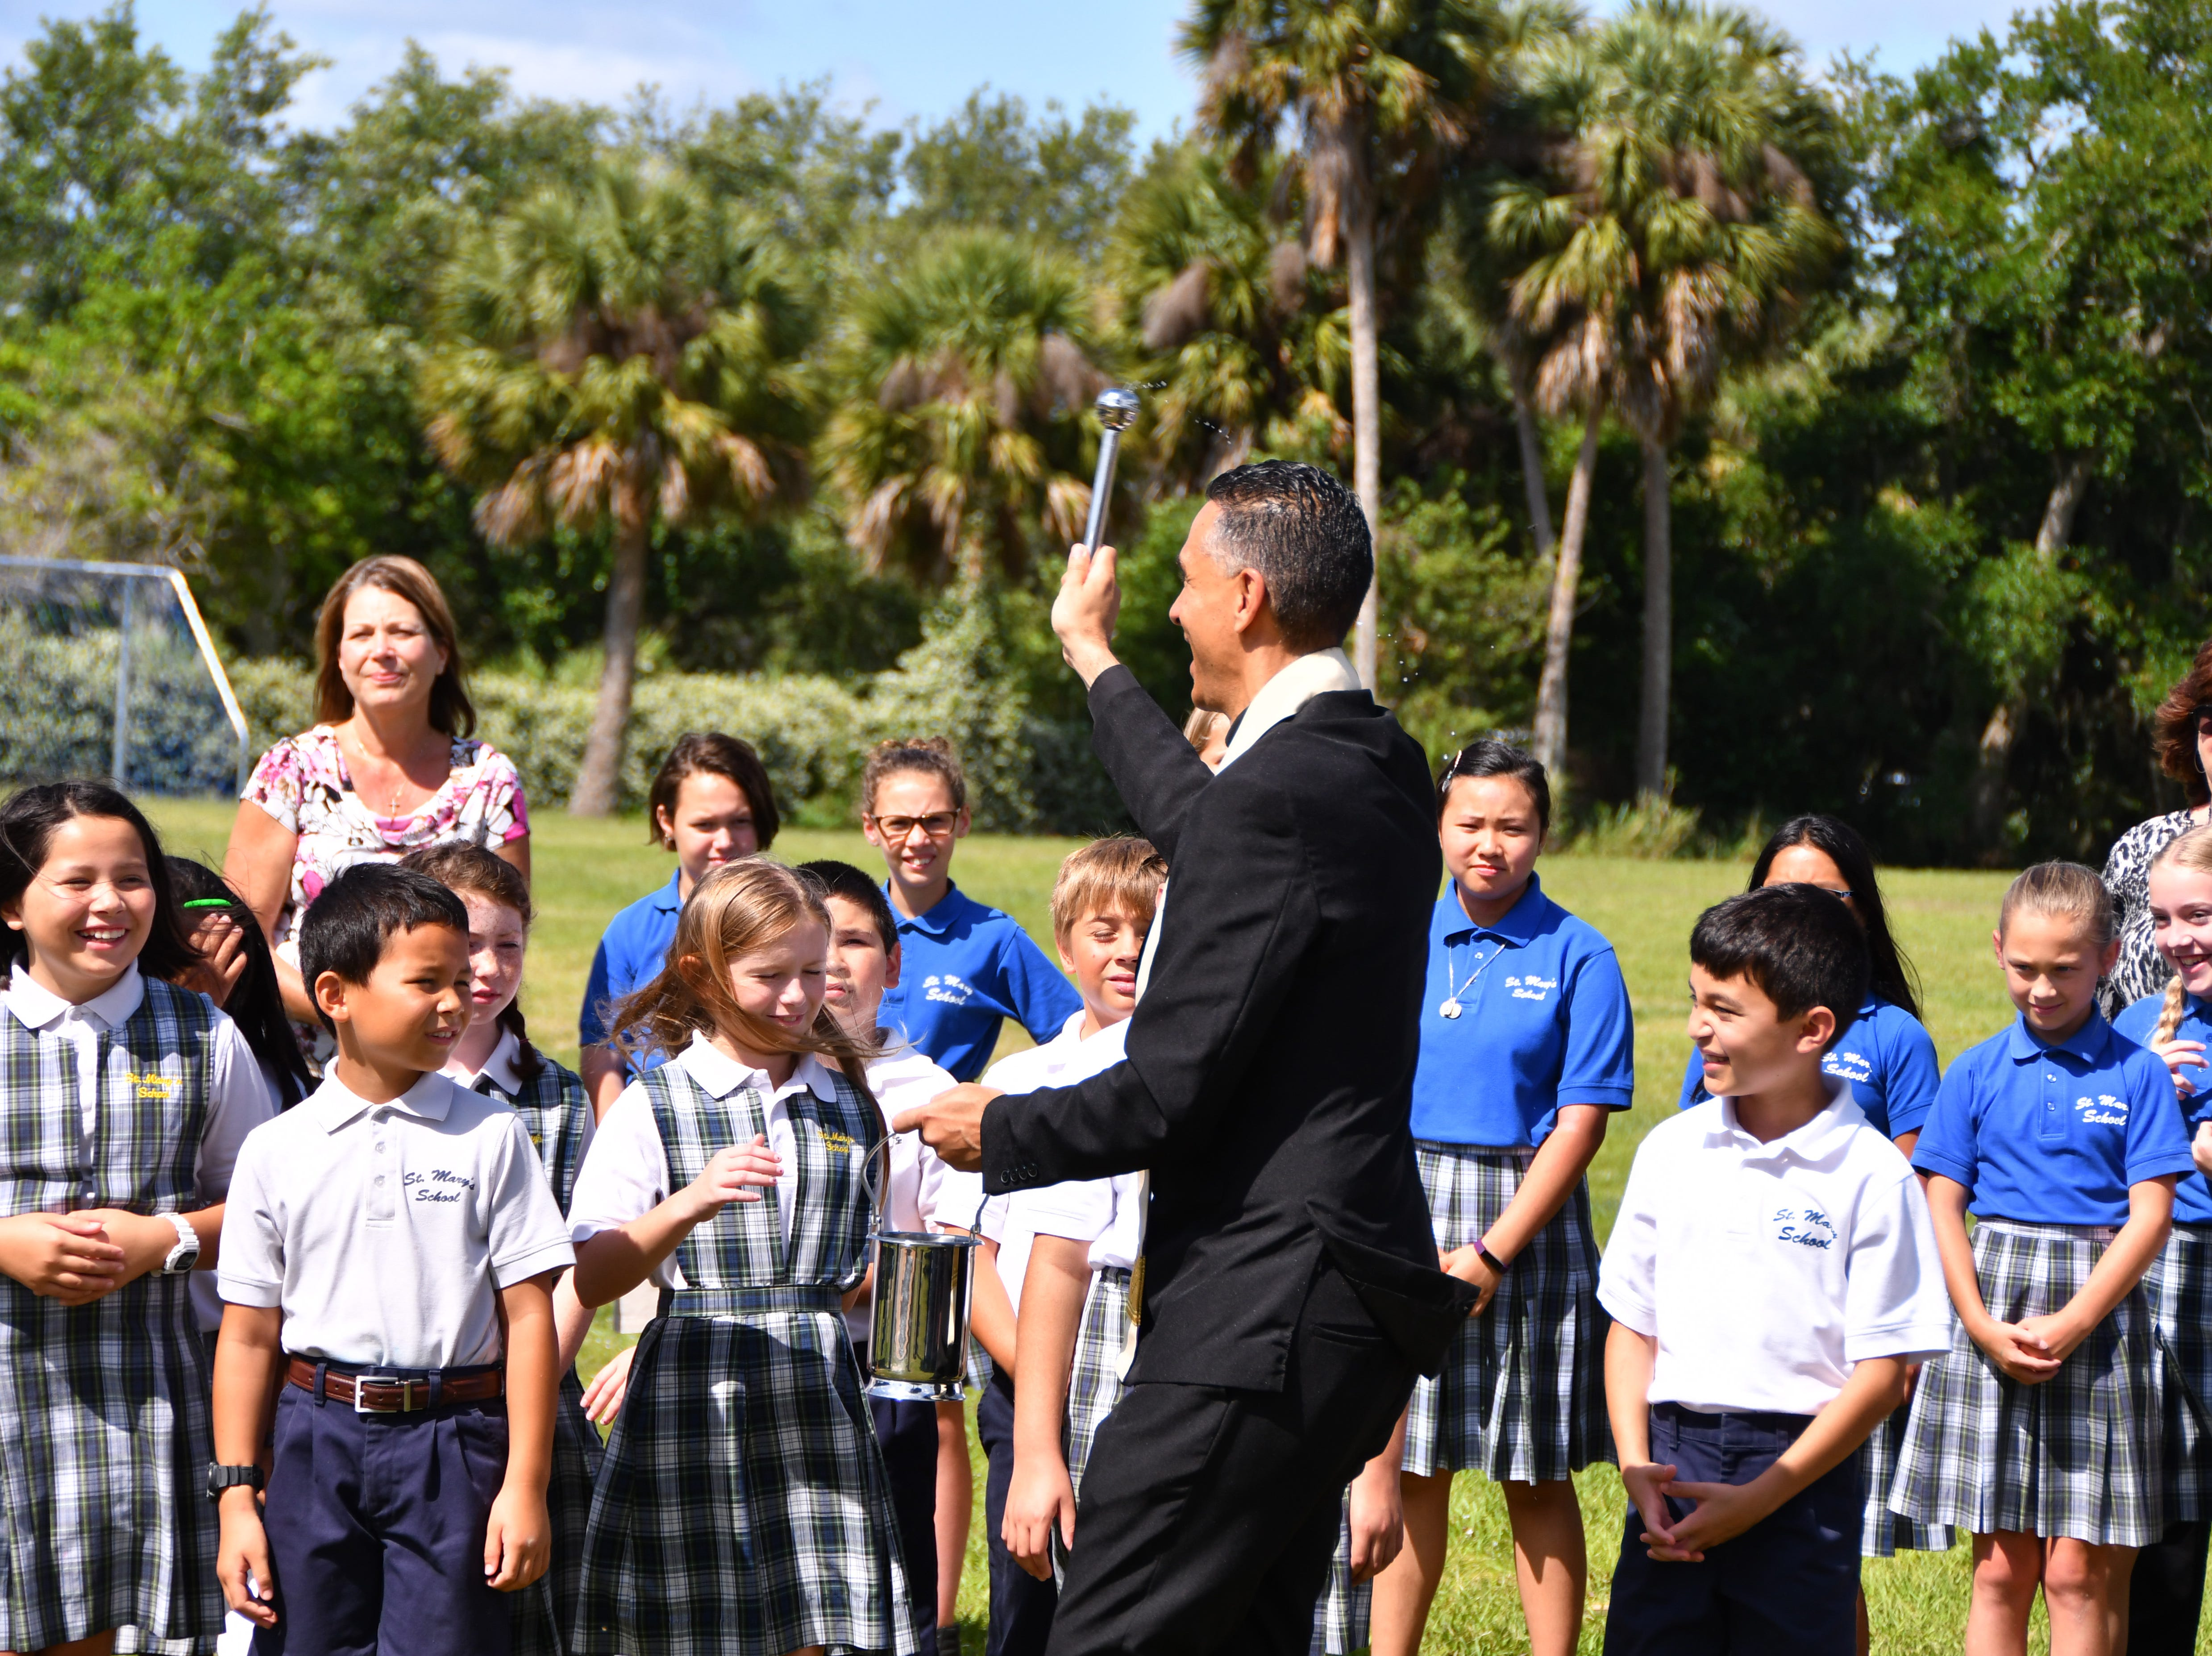 Very Rev. Ivan Olmo spoke to the group  before blessing the structures and the crowd. St. Mary Catholic School in Rockledge hosted a dedication ceremony for its newly constructed shade structures Wednesday morning made possible by a grant from the American Academy of Dermatology's Adopt-A-Shade program. Board-certified dermatologist, Francille MacFarland, MD, FAAD, provided a generous donation to the AAD, which completed the funding necessary to build the structure over the school's primary playground and picnic area. The shade will help protect more than 250 children and teachers daily from the sun's harmful ultraviolet rays. Other parishioners, families, doctors and school fund raisers helped cover the cost.